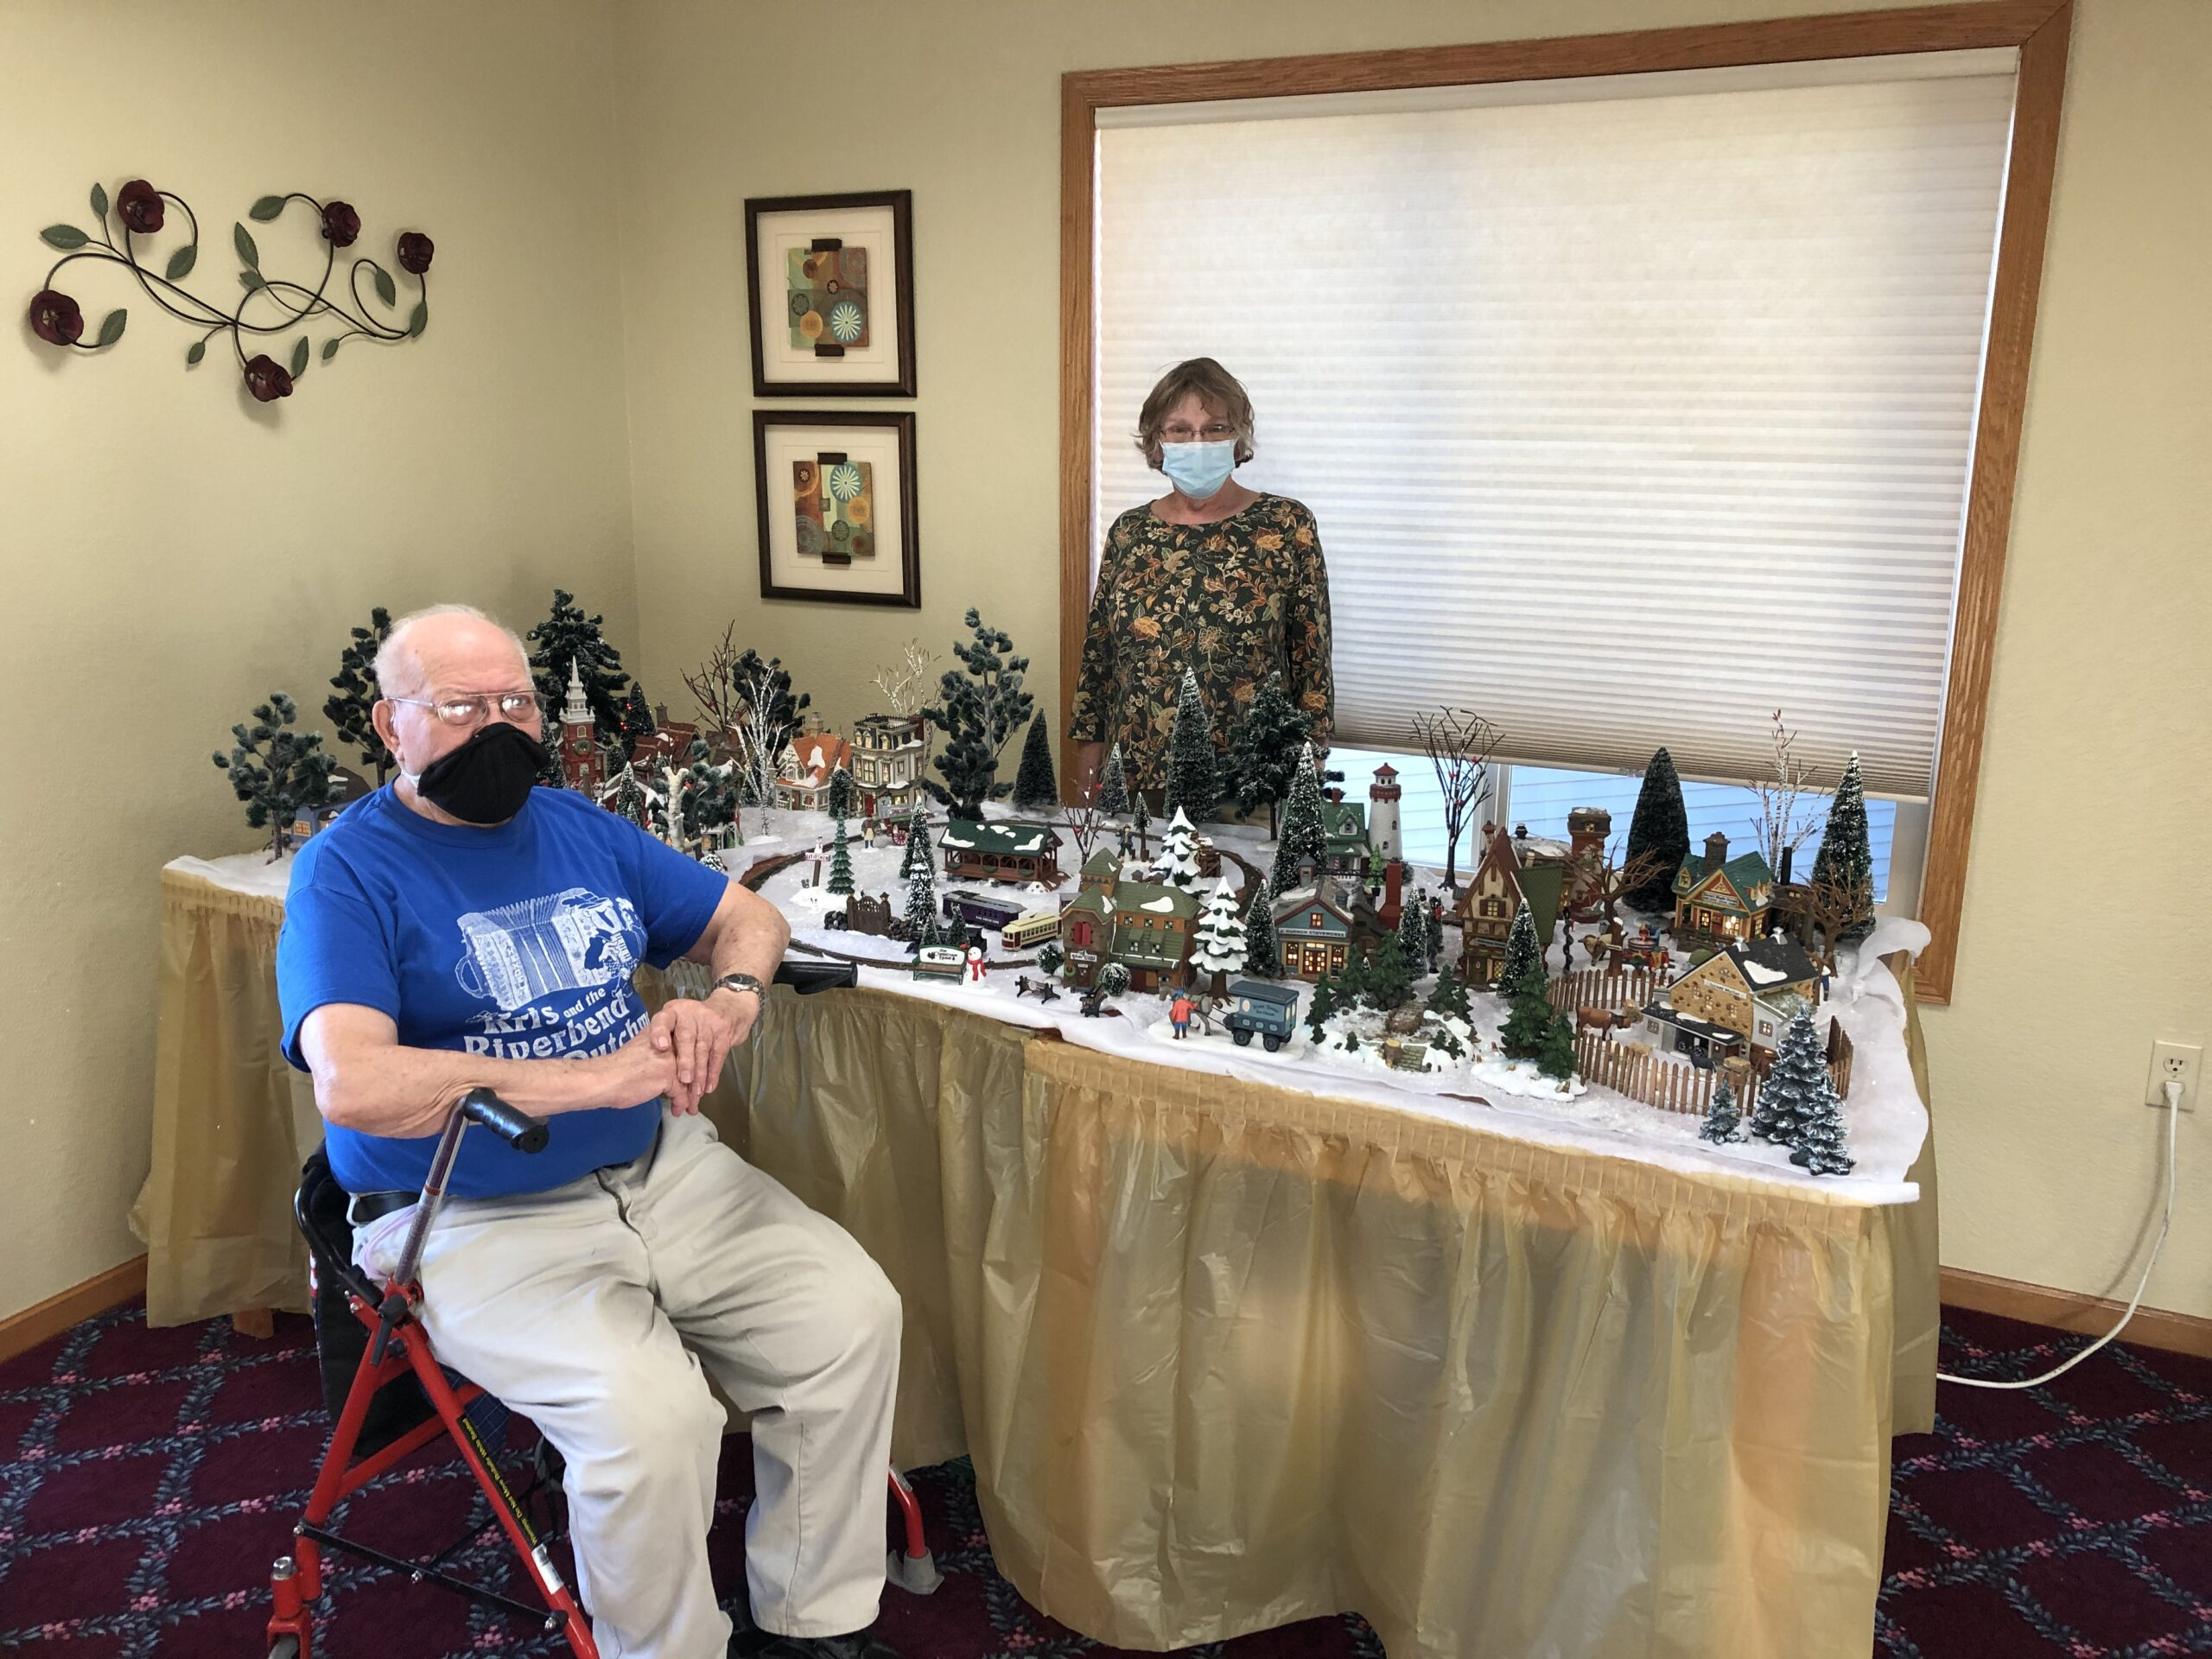 Richard & Carol worked together to put this beautiful Christmas village & train set together for all to enjoy!